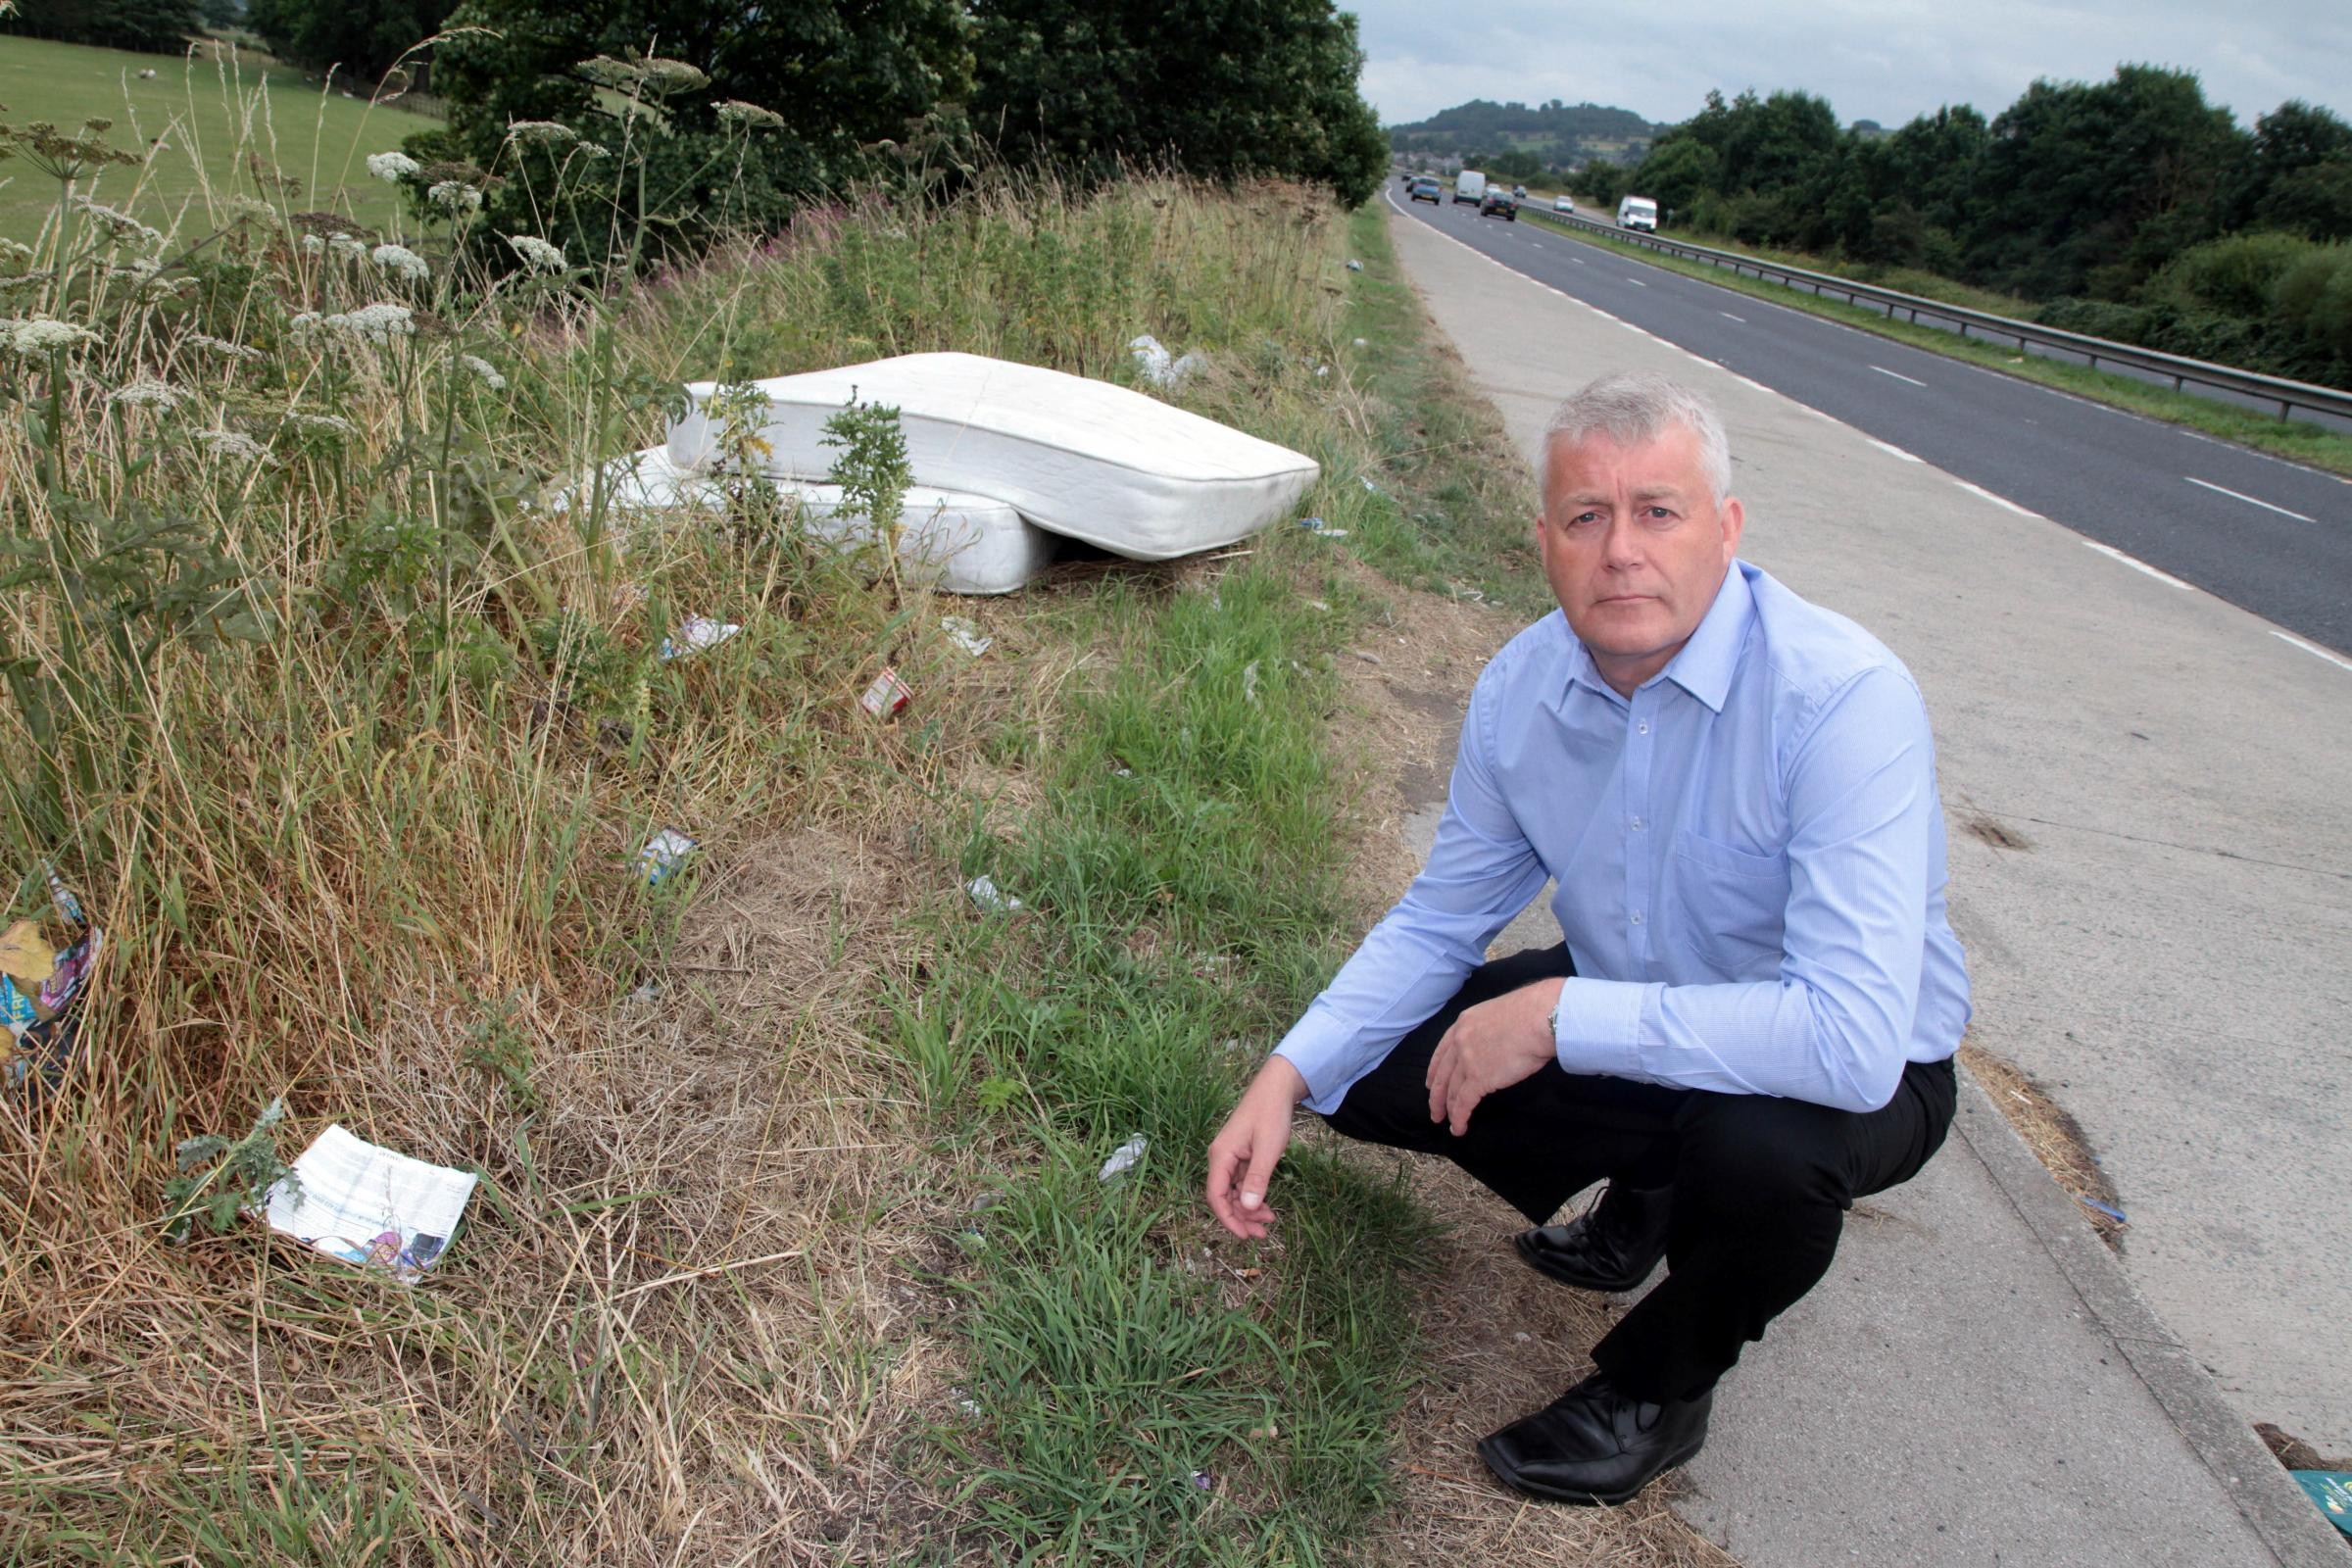 Flytippers condemned after rubbish is dumped in lay-by at Kildwick, near Keighley